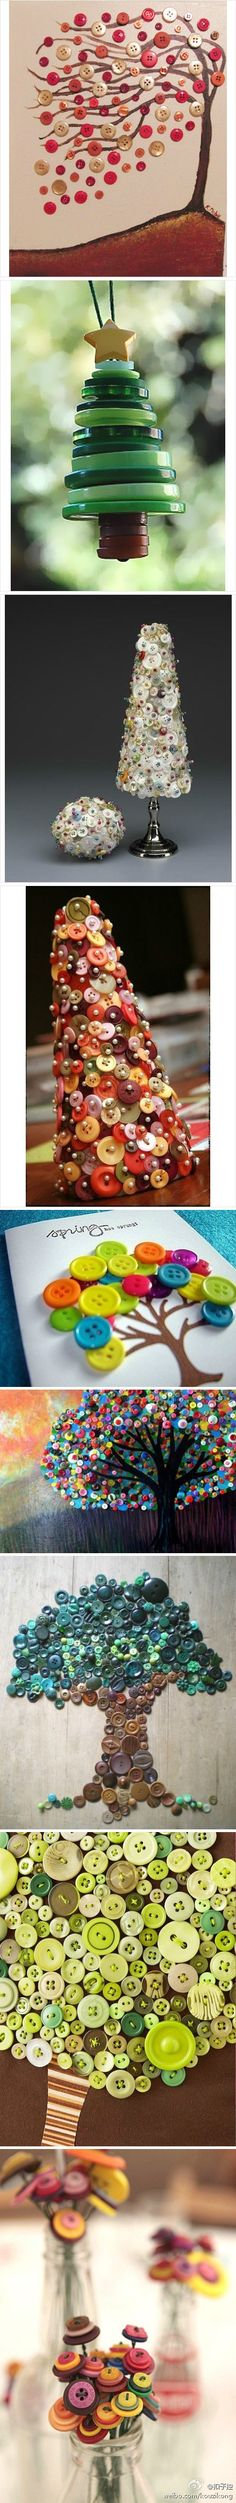 Great ideas for button crafts (pictures but no instructions) from NexToT